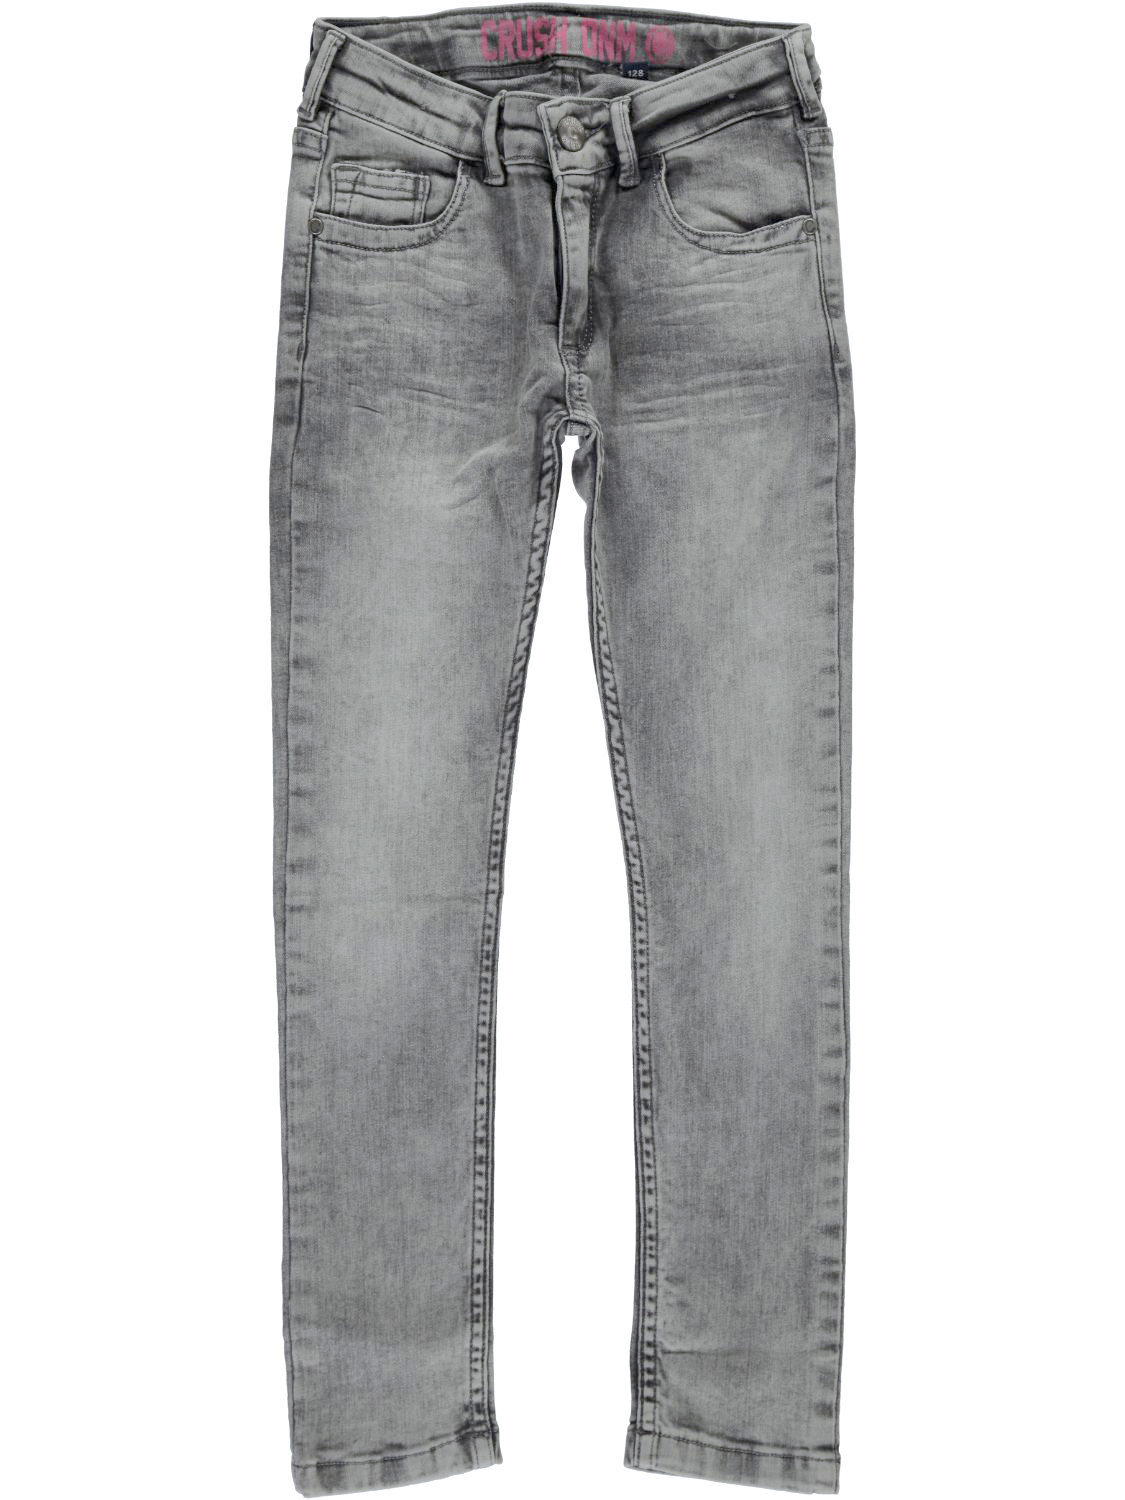 Crush Denim Lange broek